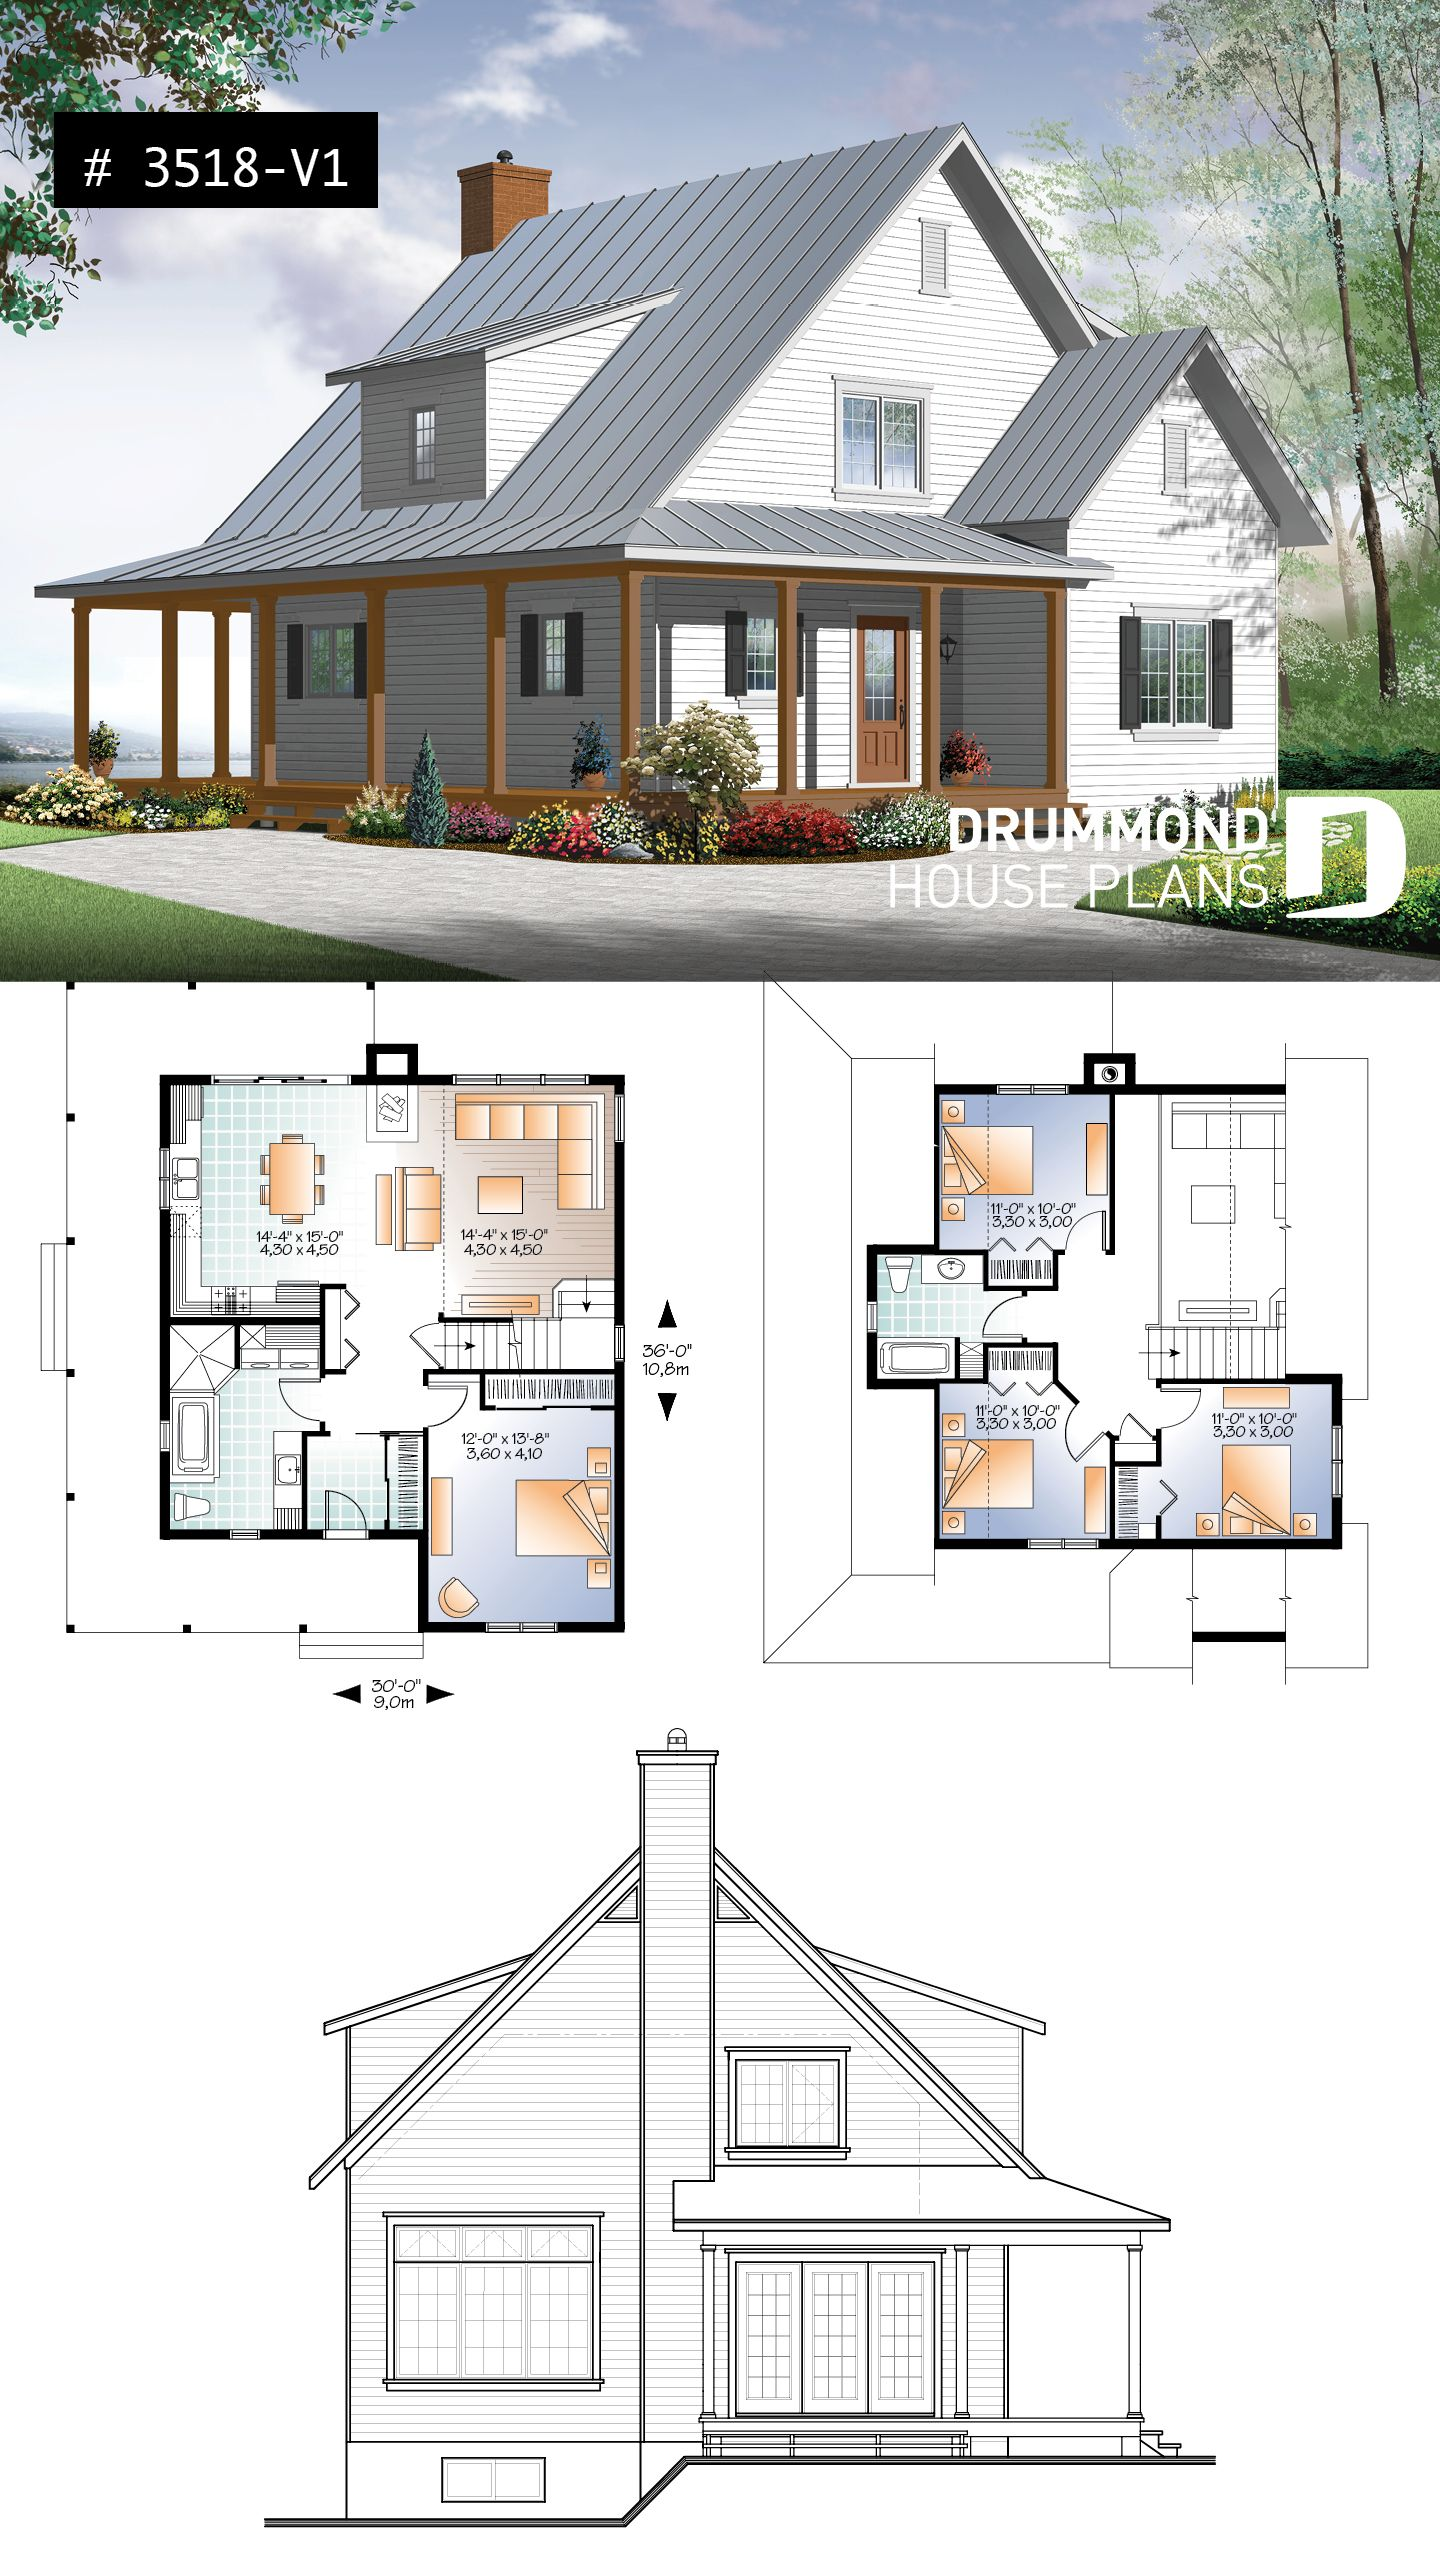 Discover The Plan 3518 V1 Hickory Lane 2 Which Will Please You For Its 4 Bedrooms And For Its Farmhouse Styles Affordable House Plans Small Cottage House Plans Cottage Floor Plans